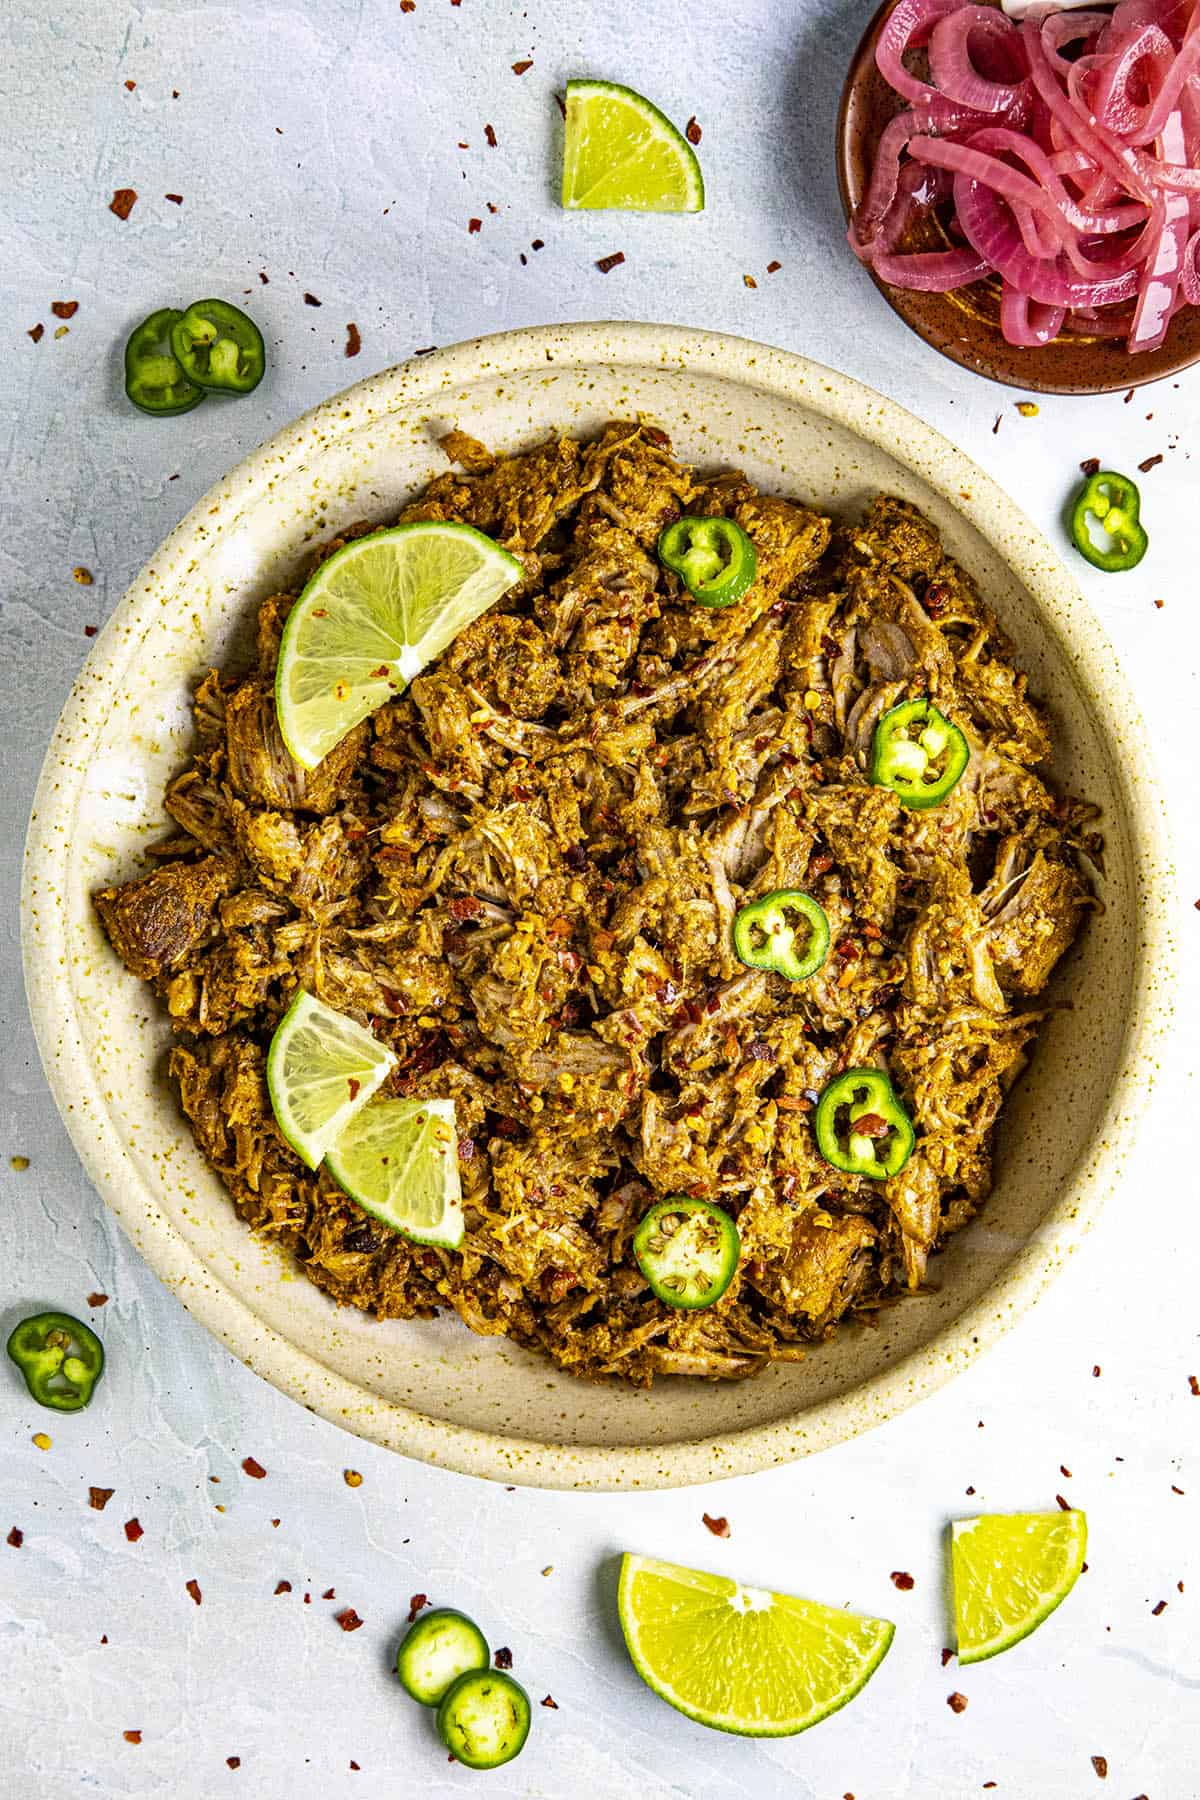 Shredded Cochinita Pibil in a bowl, ready to serve